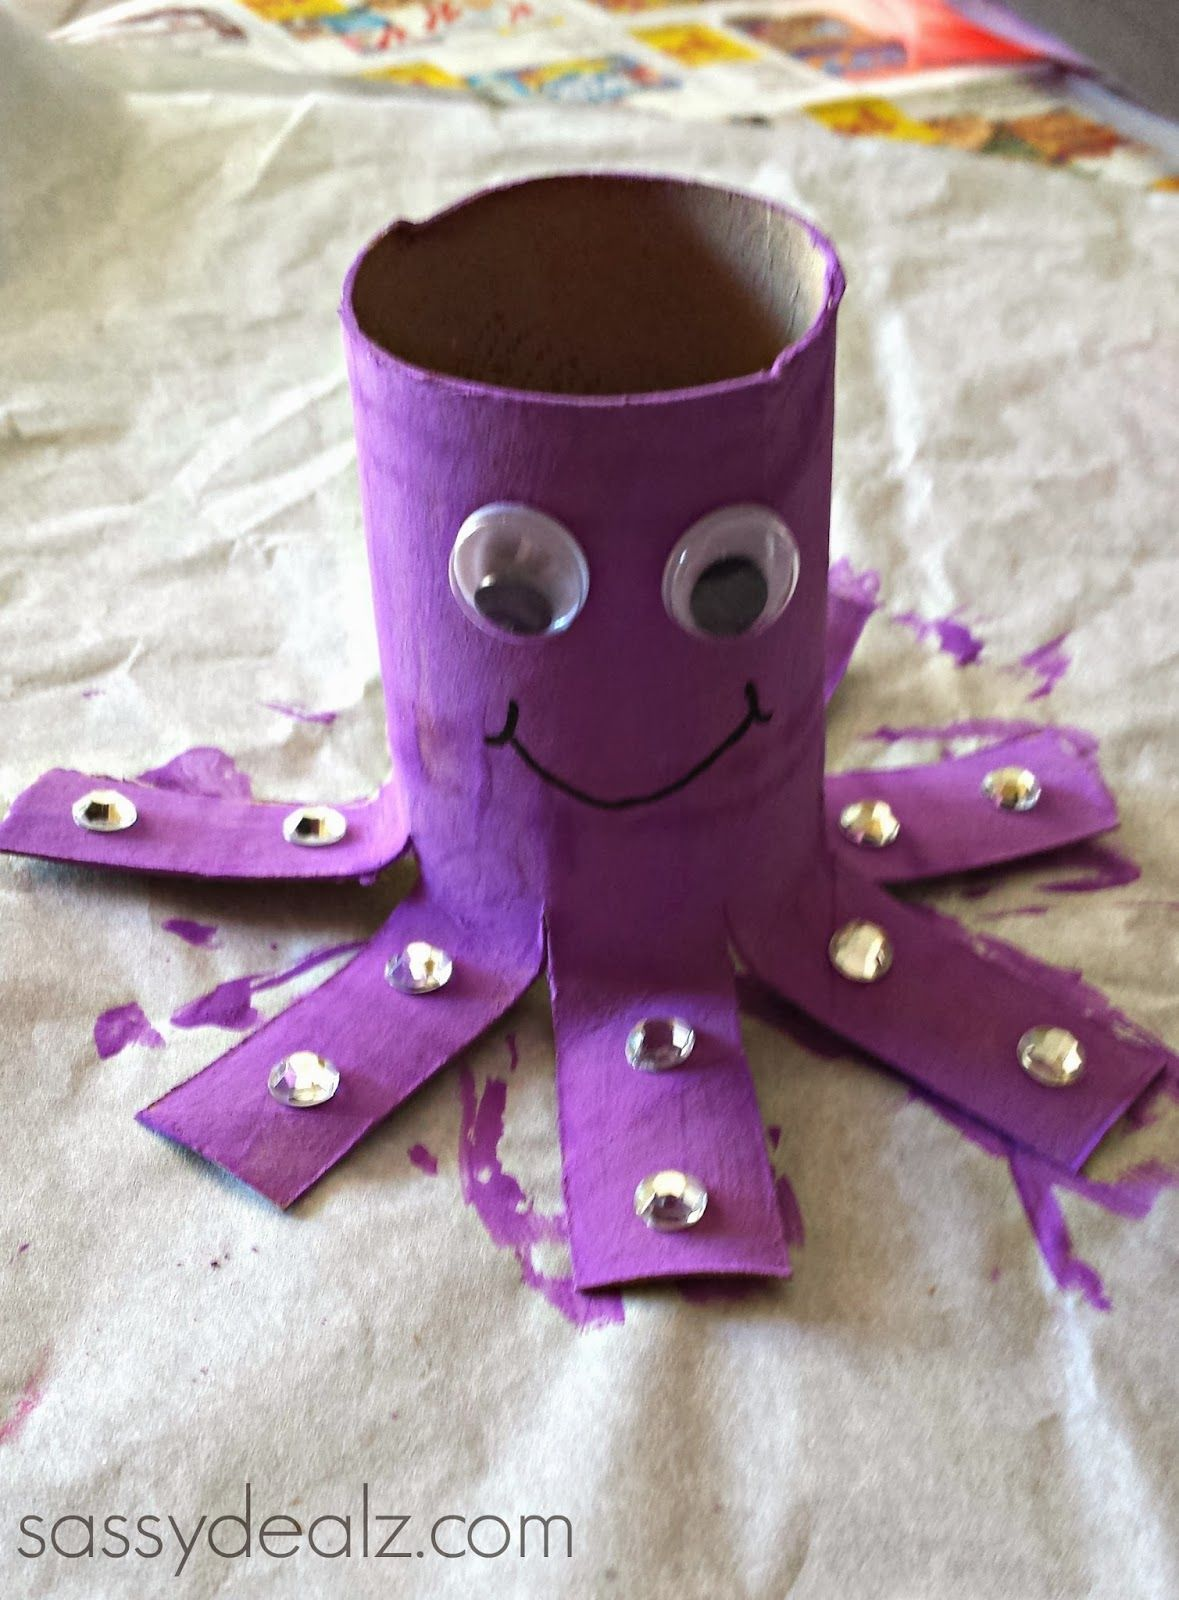 Octopus toilet paper roll craft for kids recycled empty - Sassydeals com ...